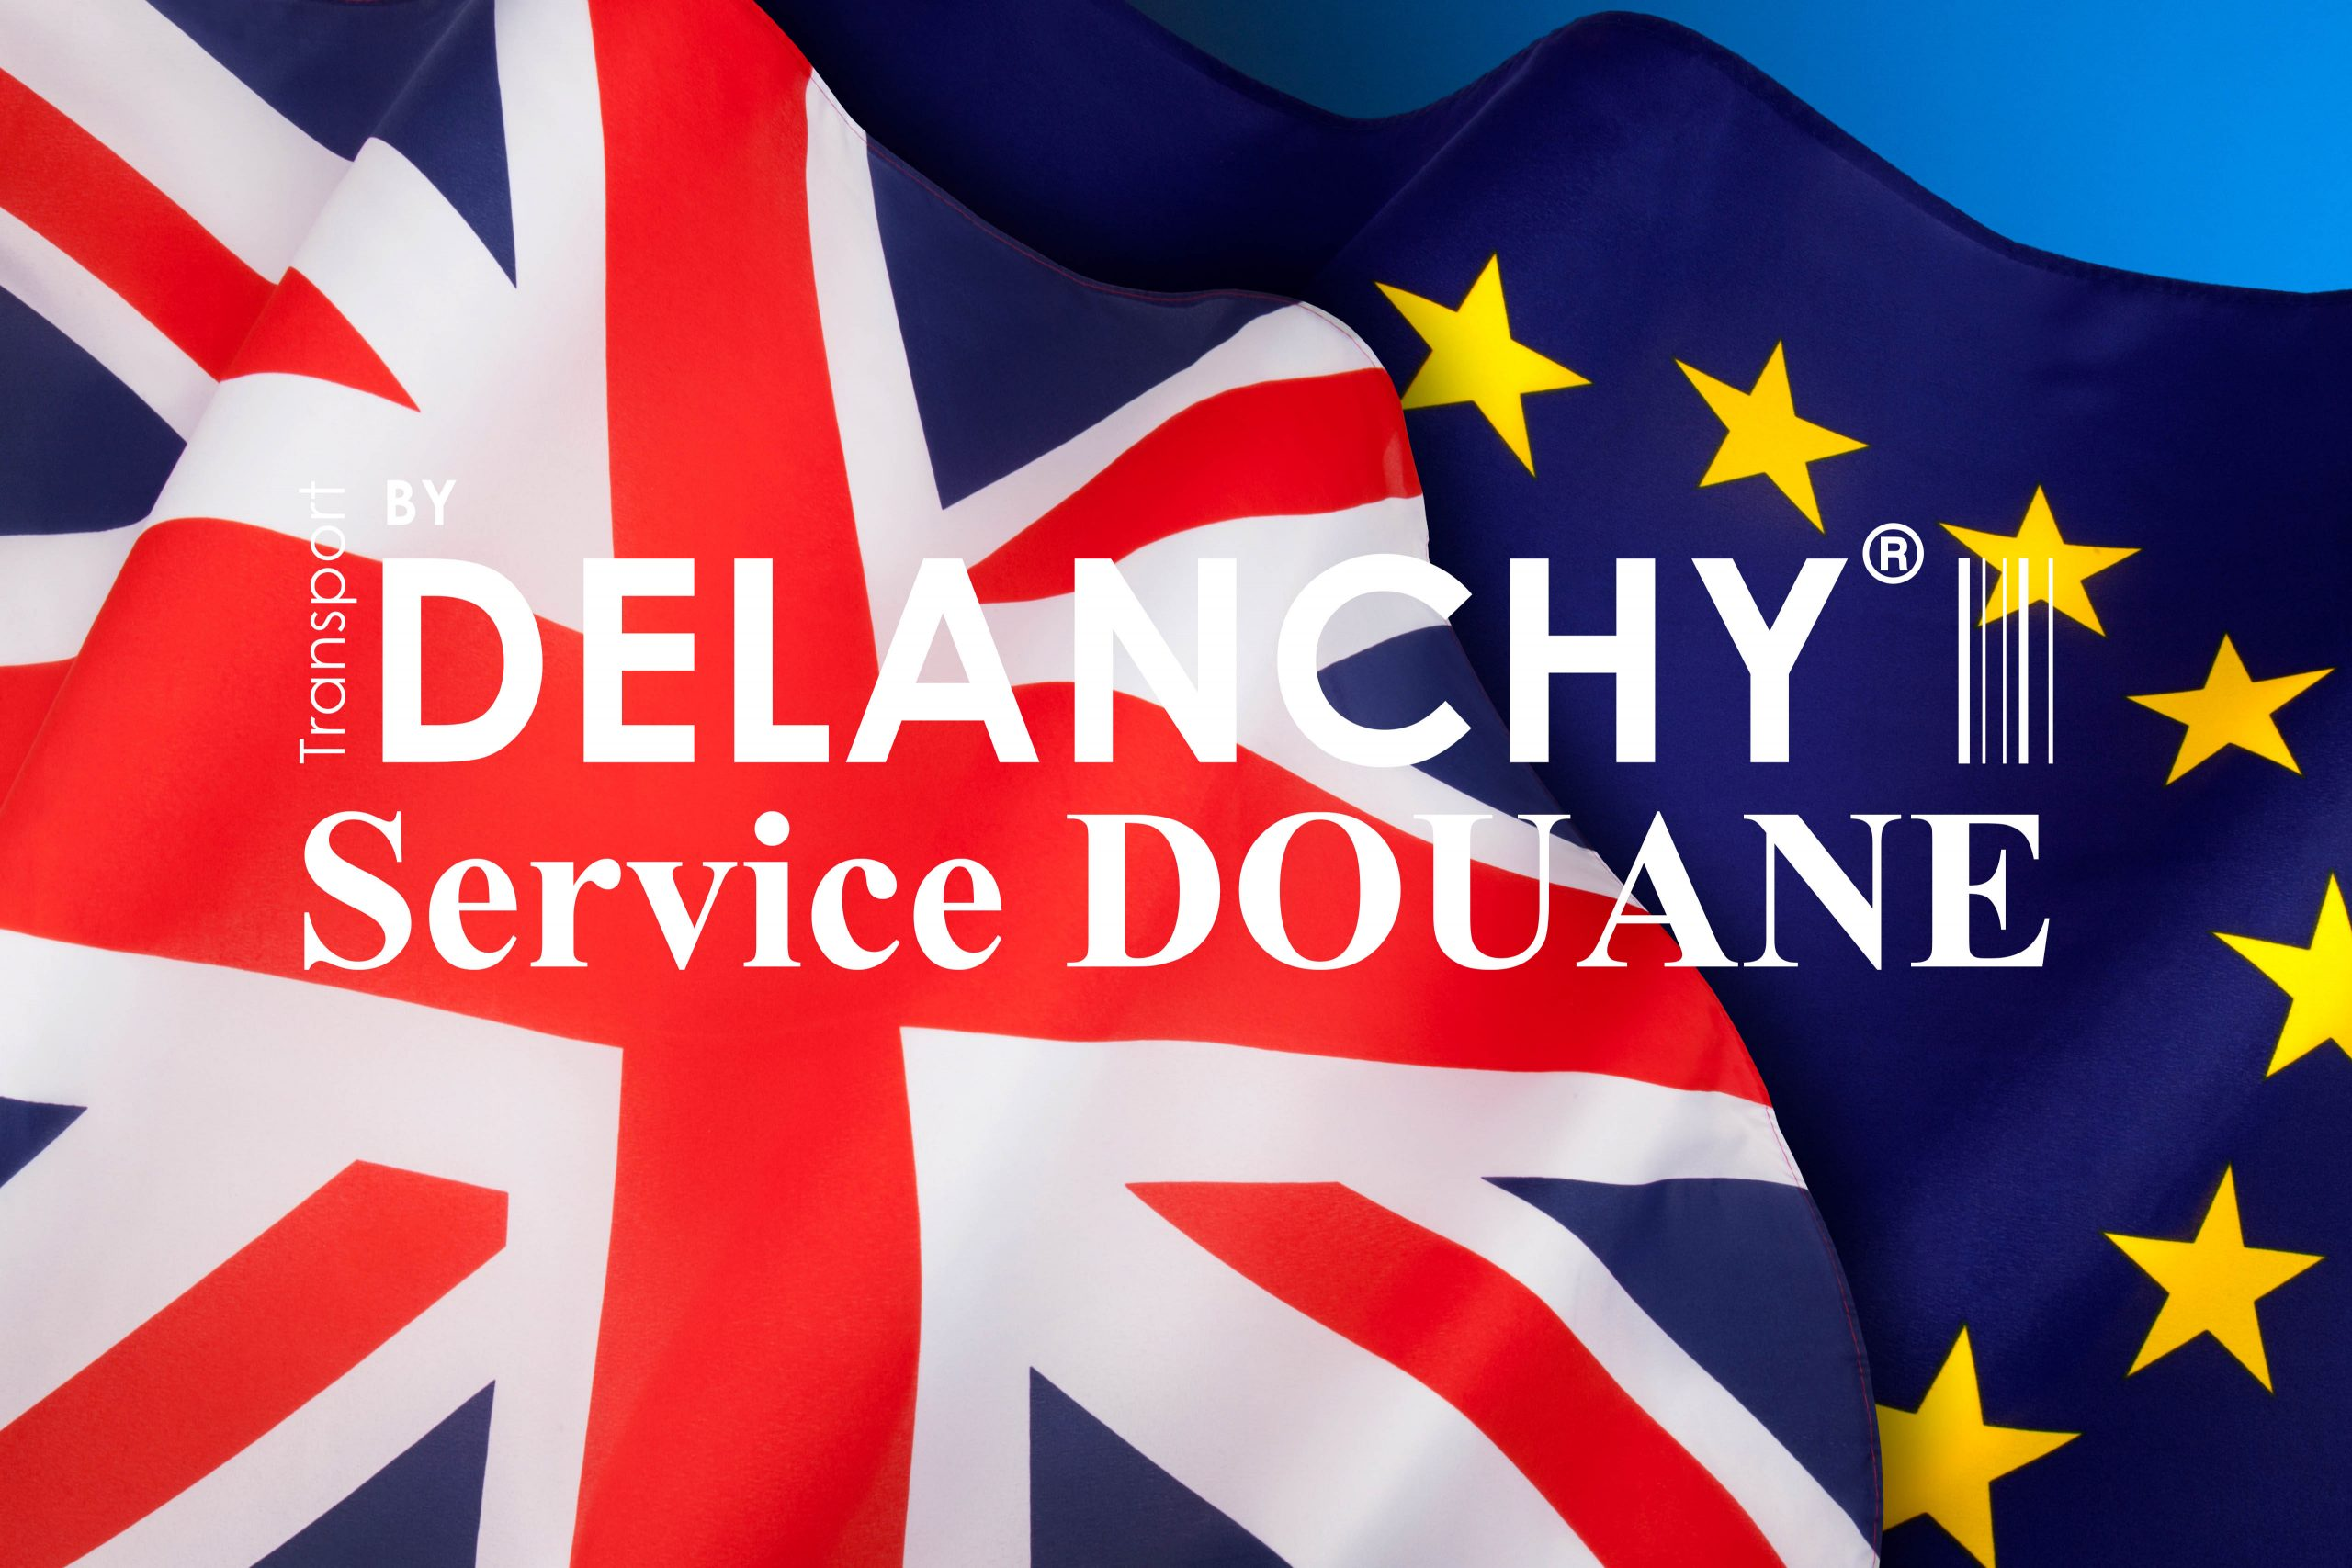 BREXIT – DELANCHY's CUSTOMS SERVICE is here to help you.